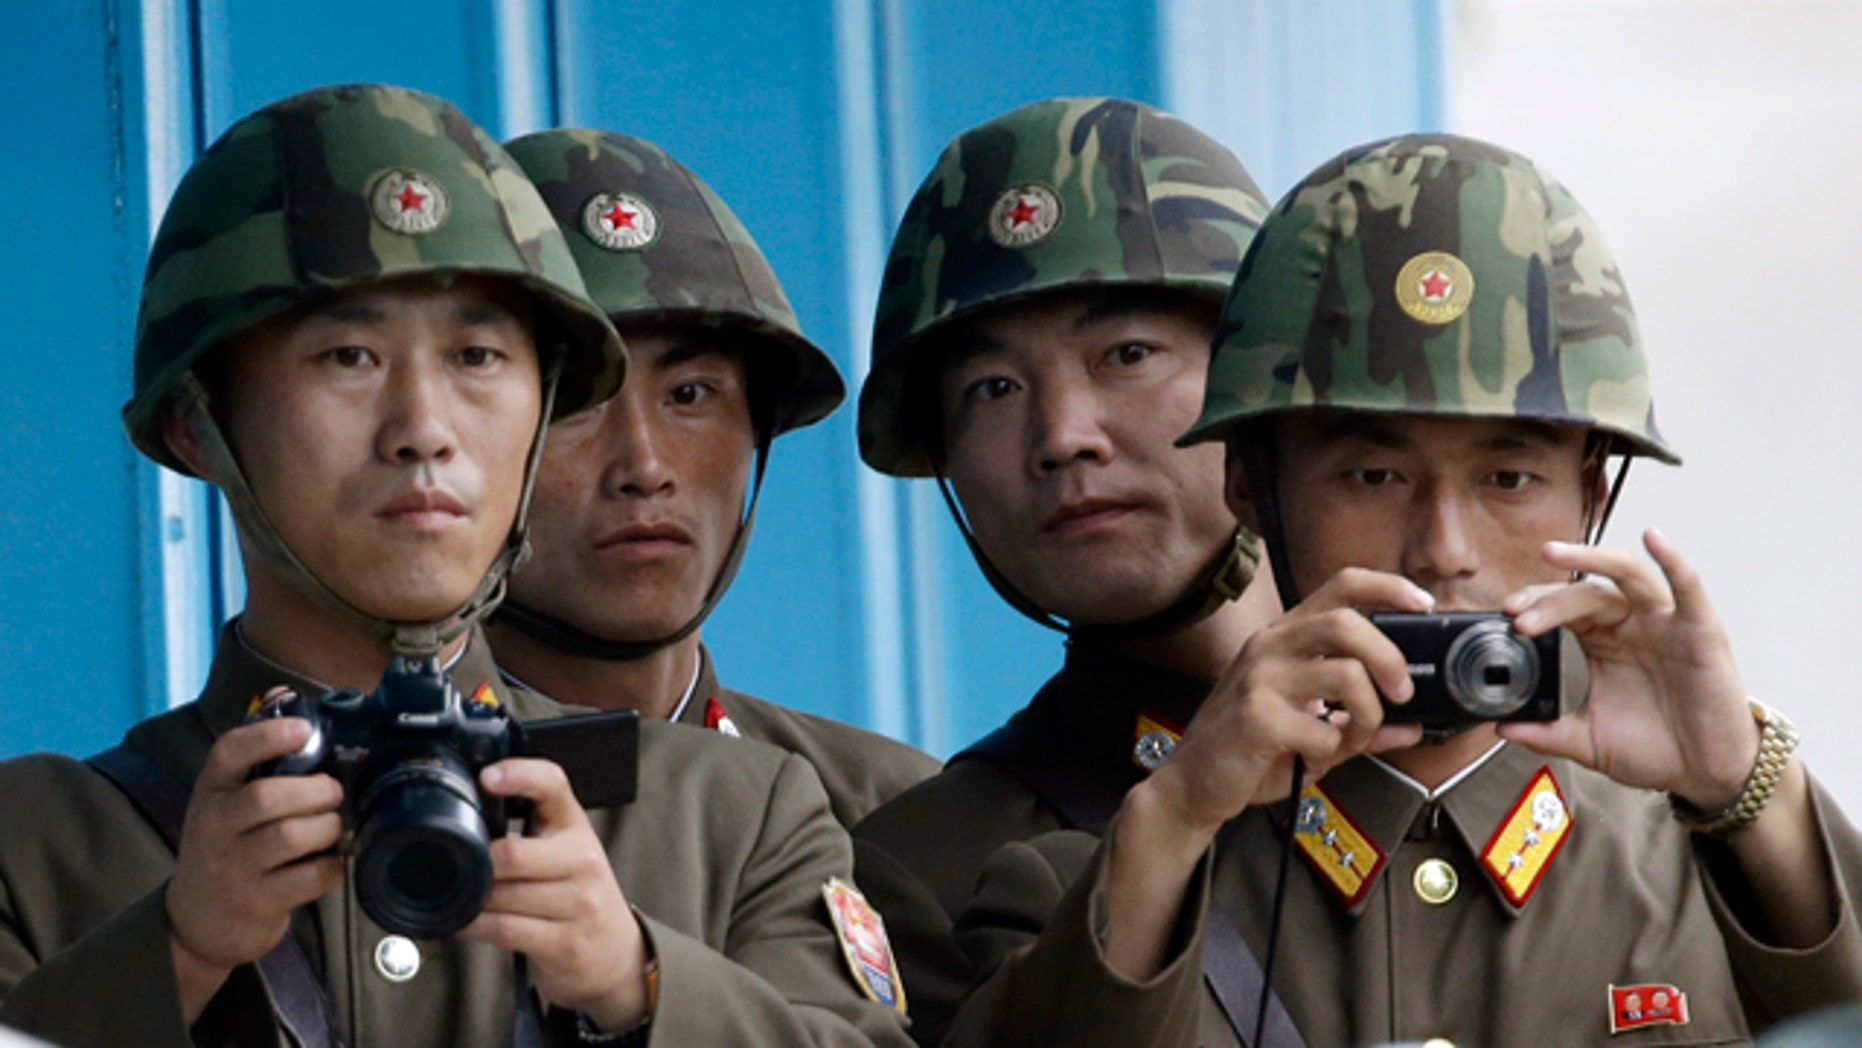 In this Saturday, July 27, 2013 photo, North Korean soldiers watch the southern side with cameras at the border village of Panmunjom, which has separated the two Koreas since the Korean War, in Paju, South Korea. (AP Photo/Lee Jin-man)